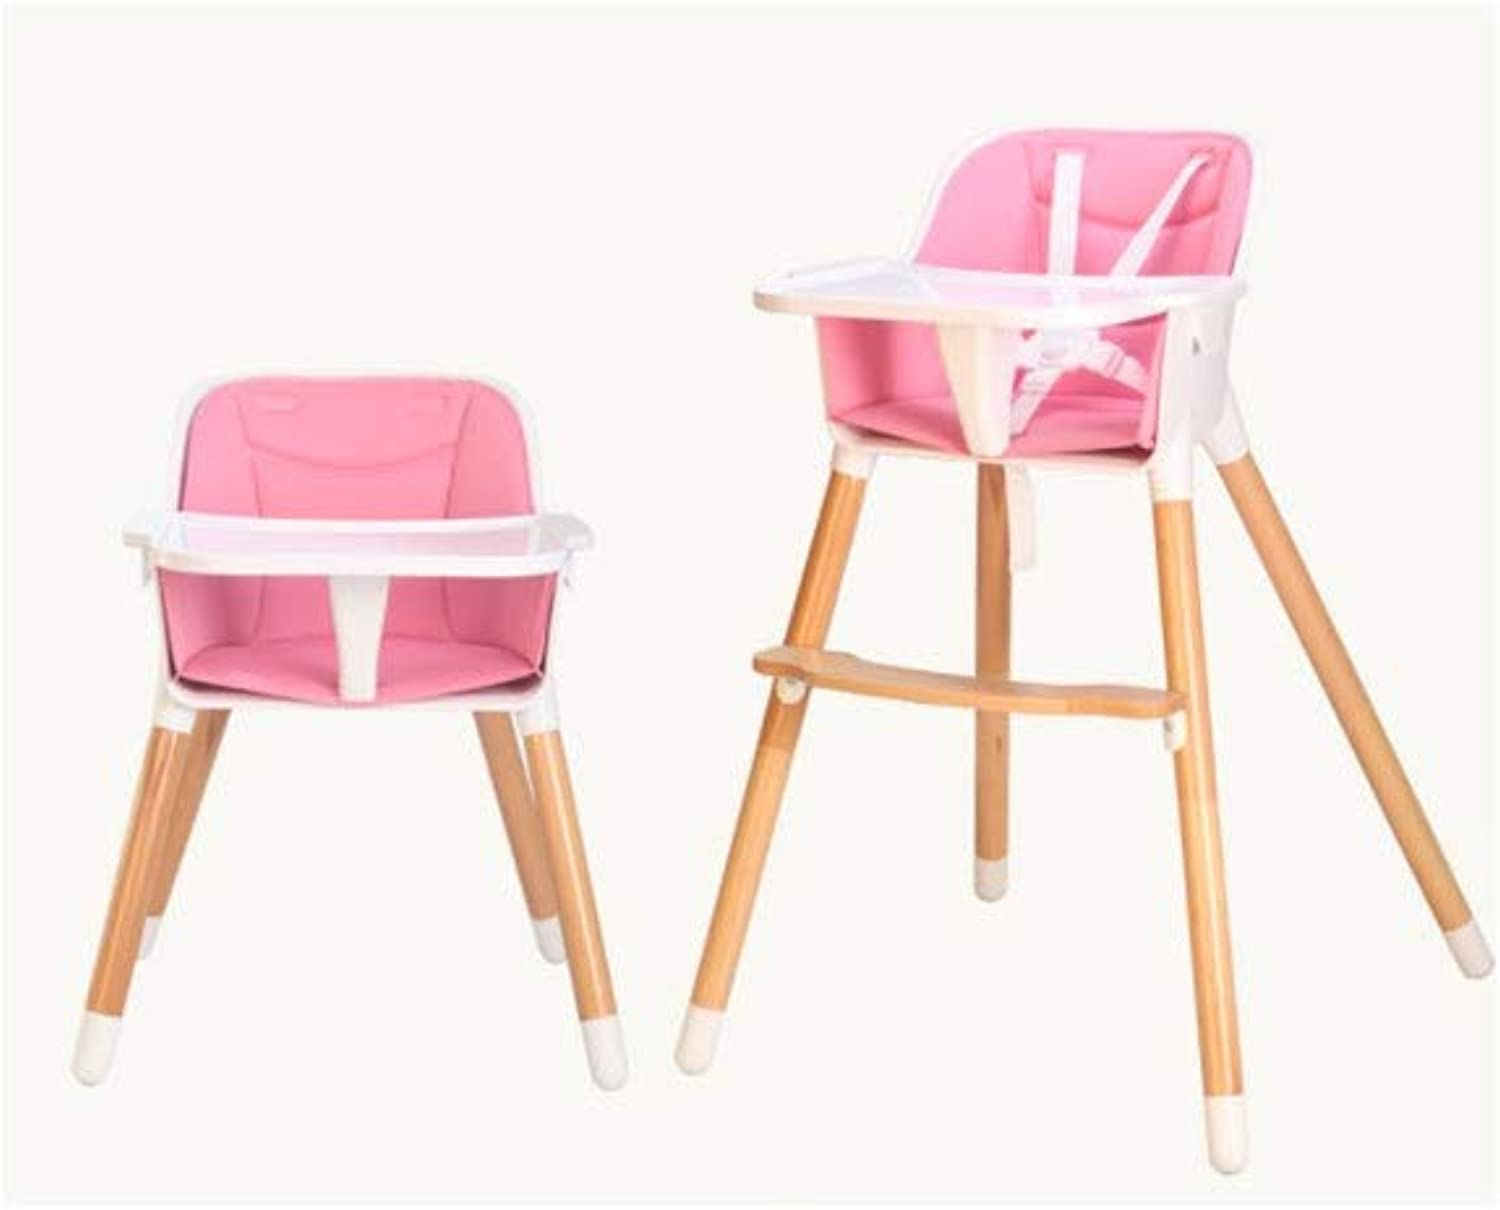 Wooden Baby Dining Chair Sleek Minimalist Comfortable Portable Detachable Baby Chair (color   Pink, Size   55  53  87cm)